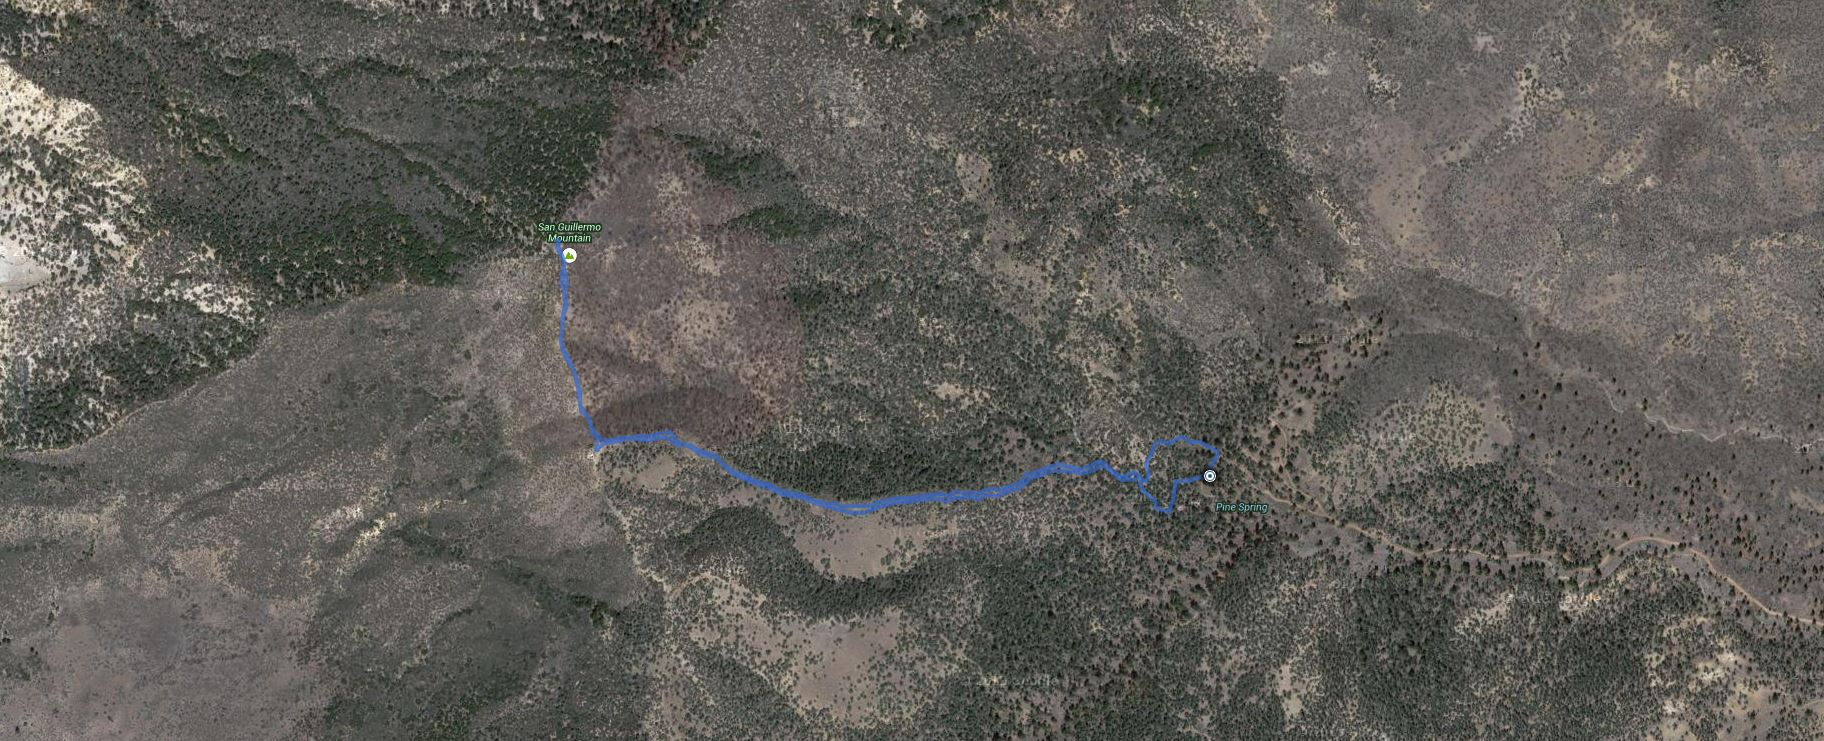 2014-09-20-SanGuillermoMountain